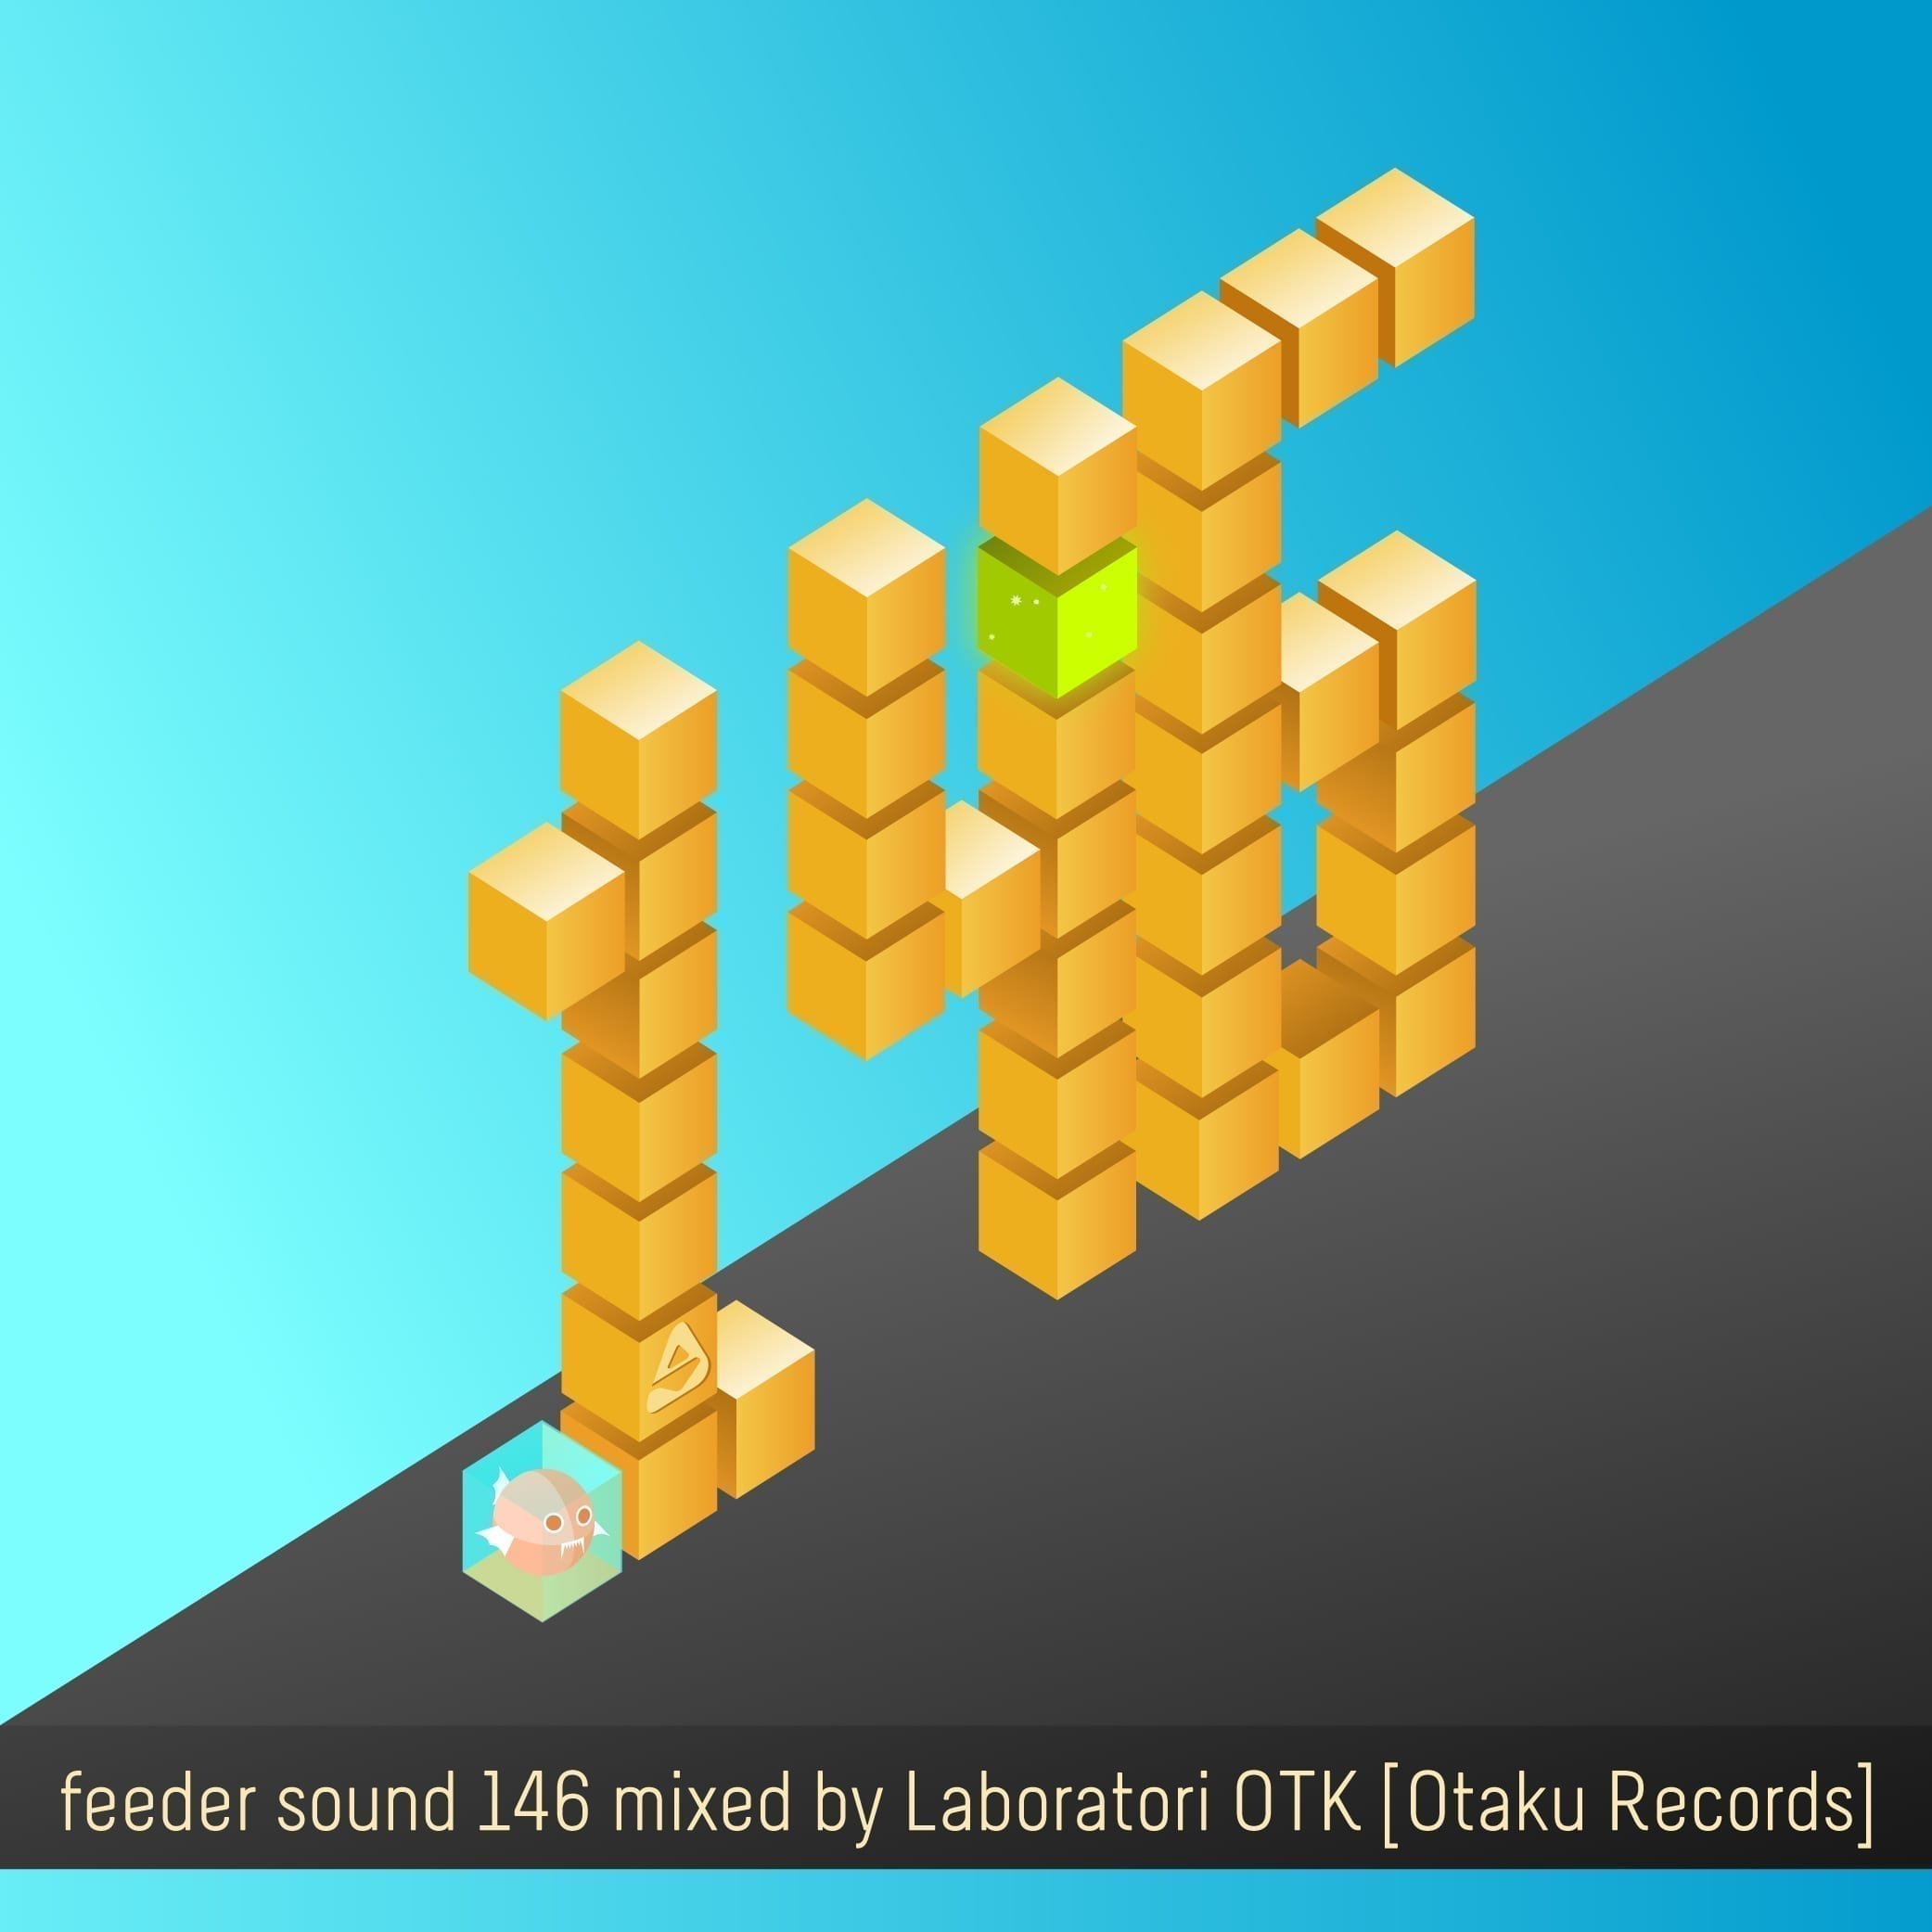 feeder sound 146 mixed by Laboratori OTK [Otaku Records]